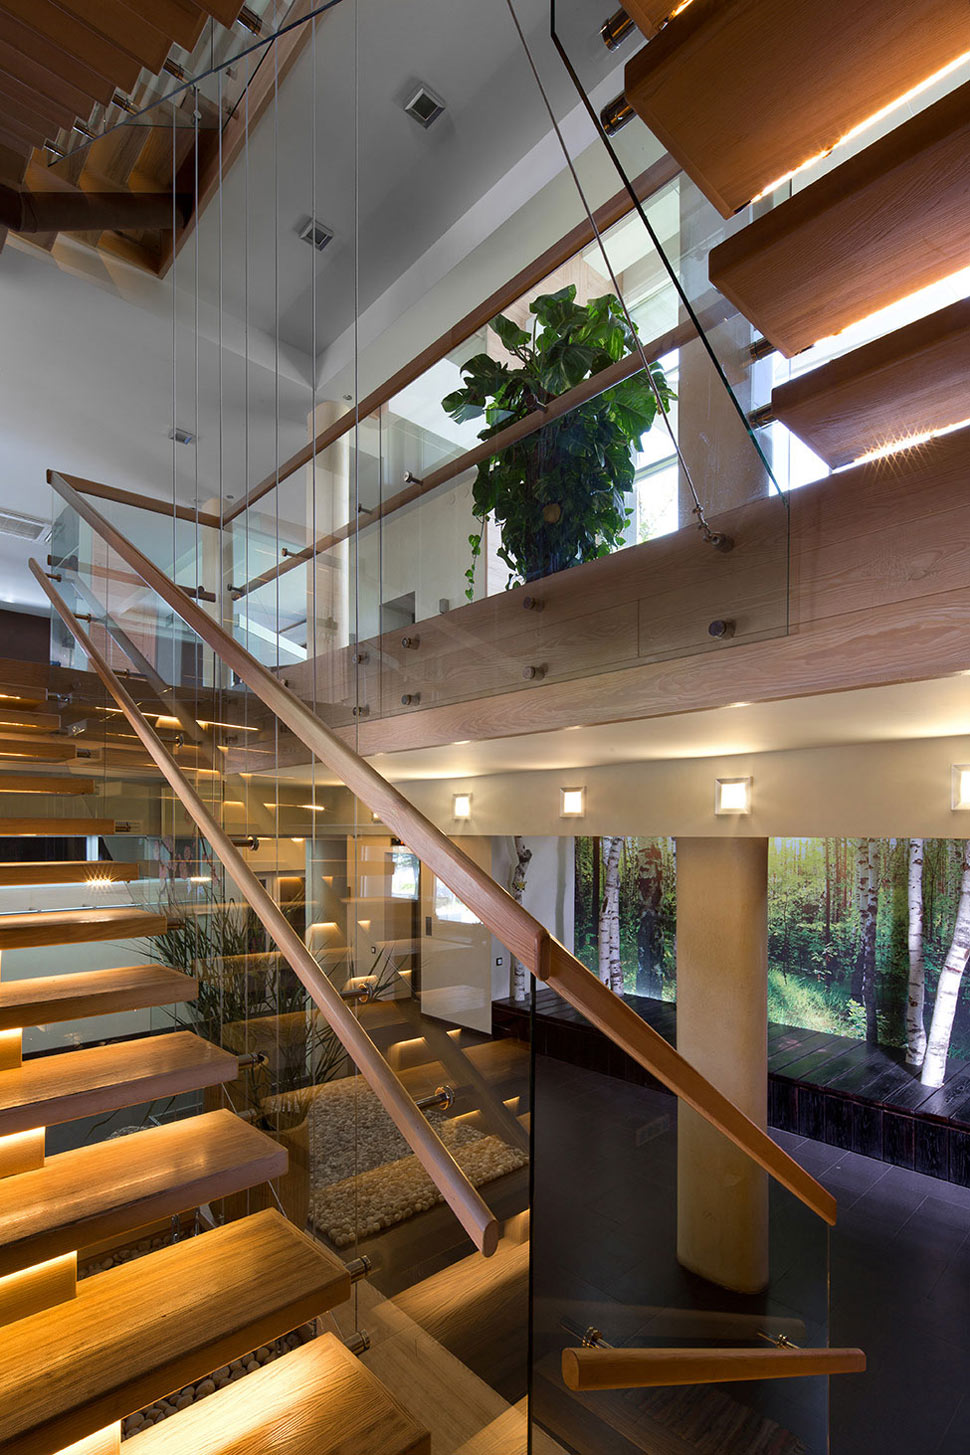 Wood & Glass Stairs, House in Dnepropetrovsk, Ukraine by Yakusha Design